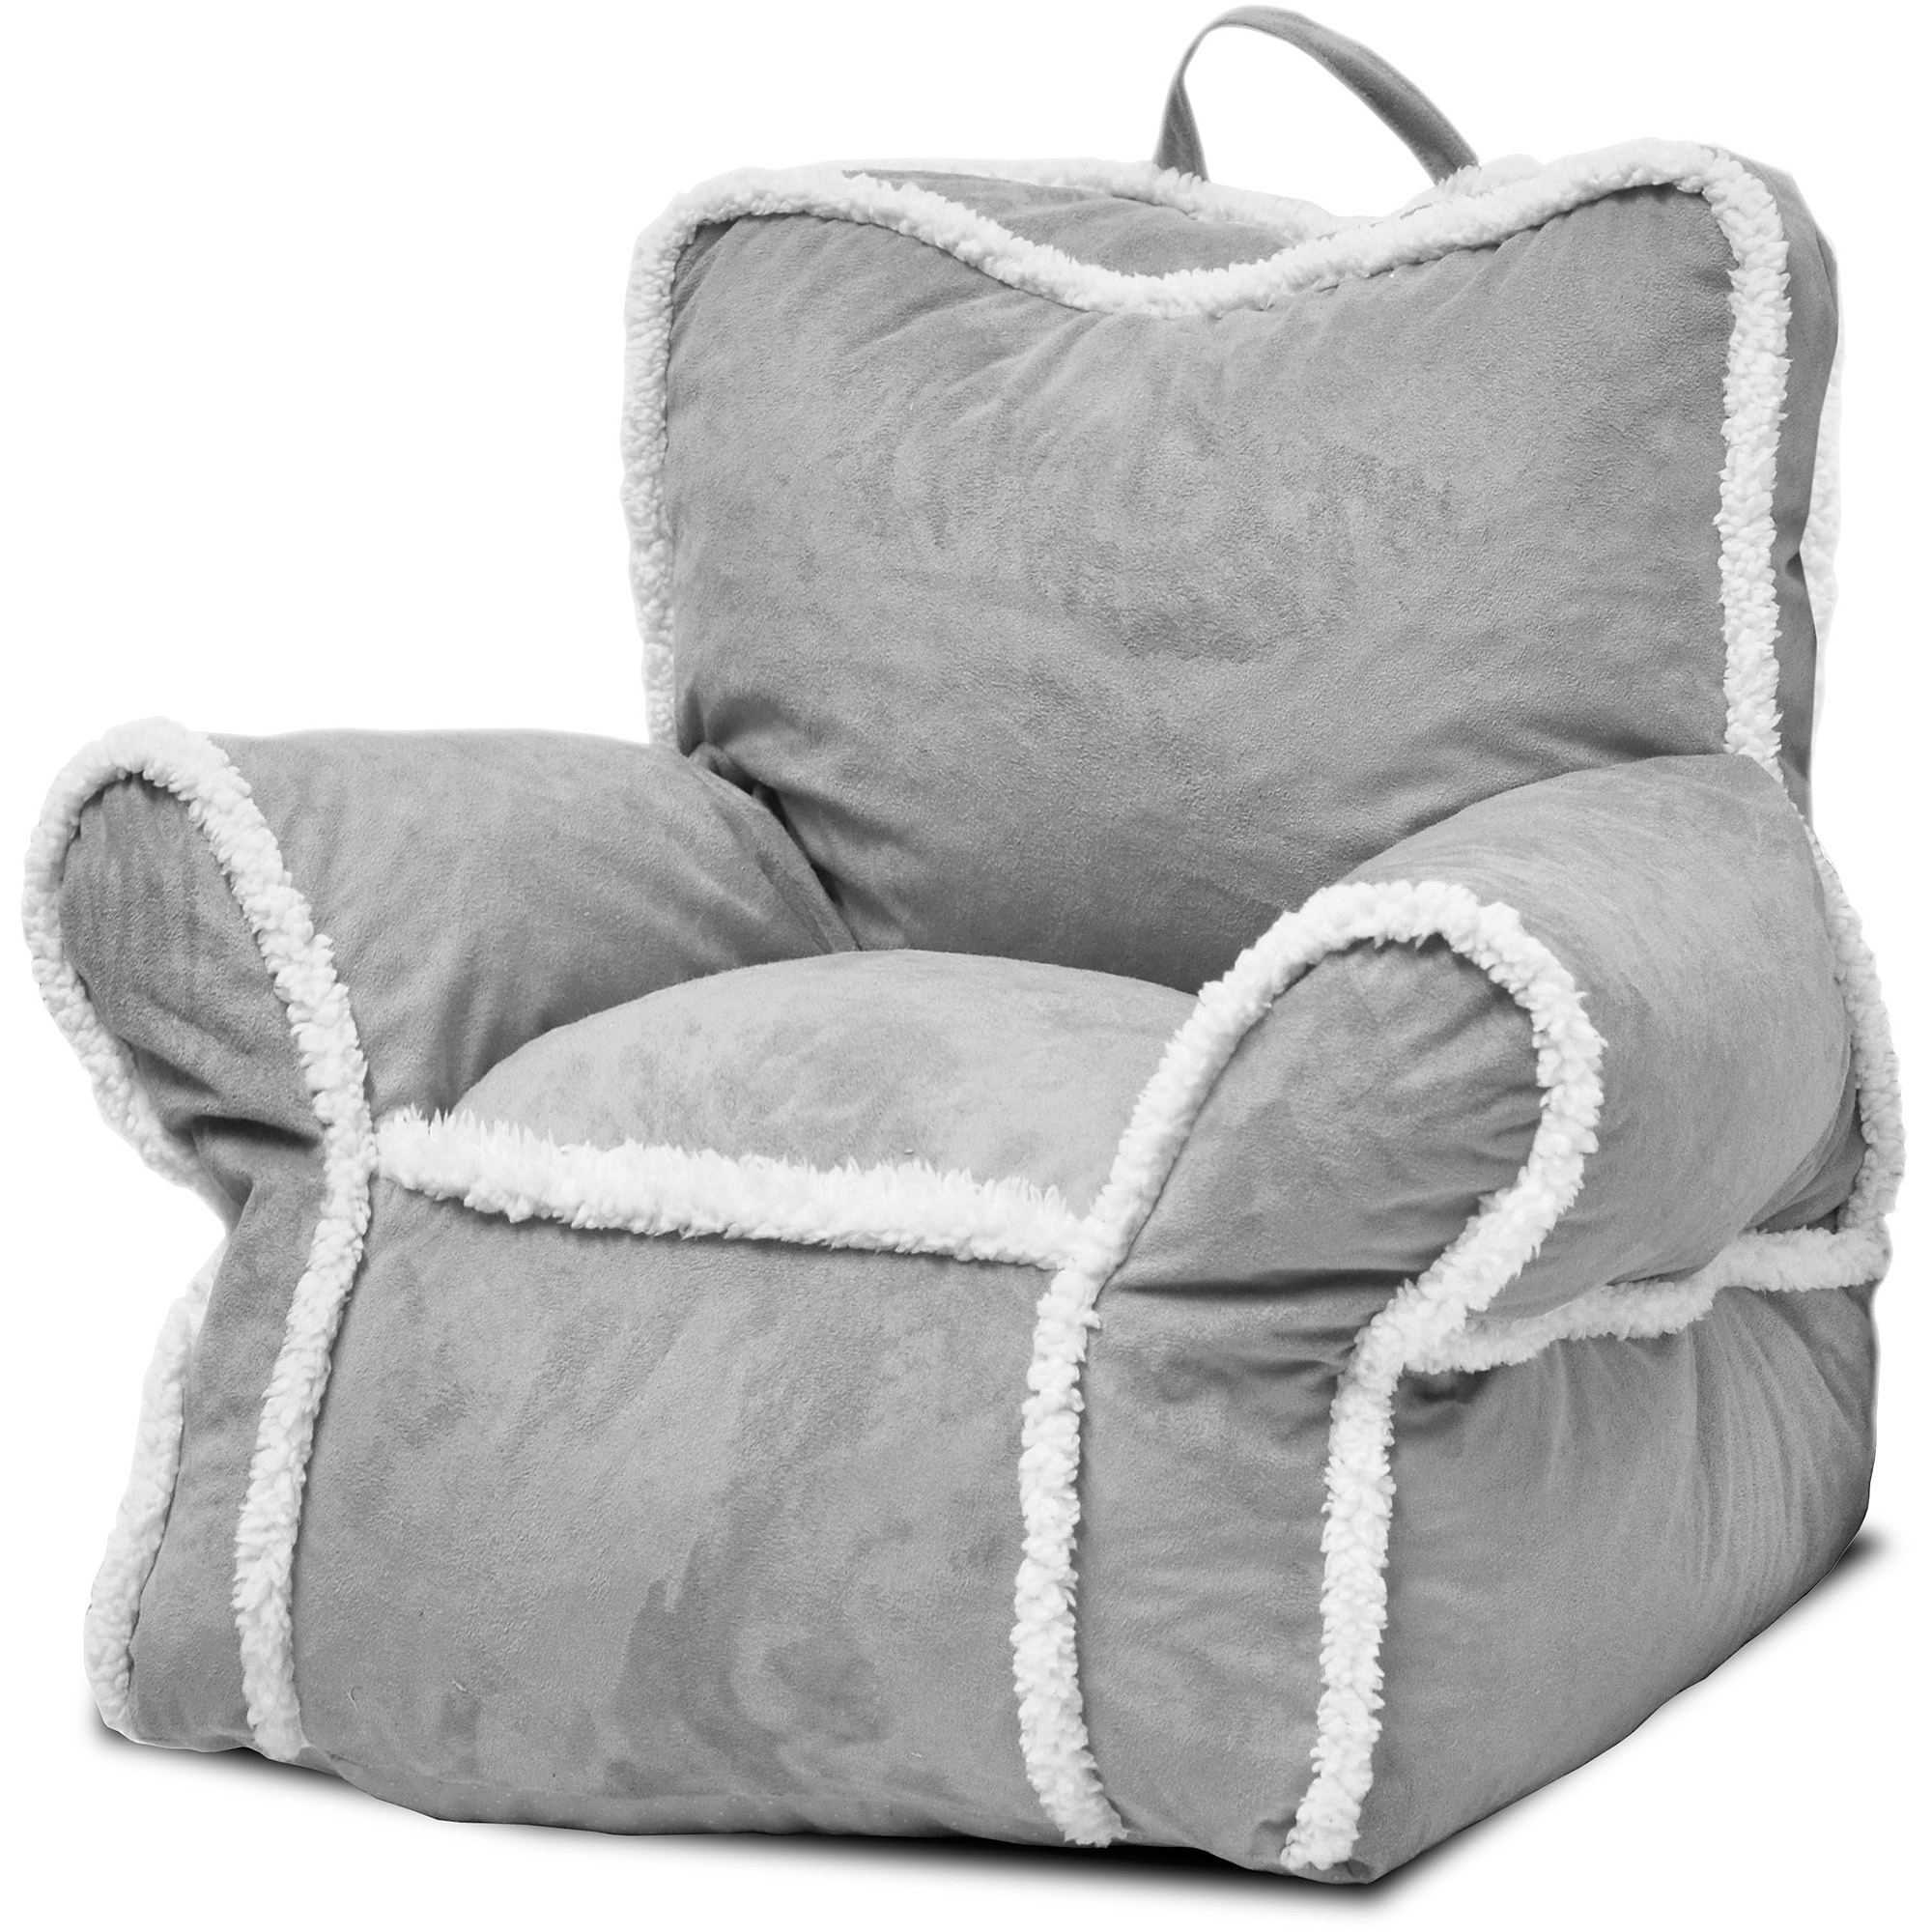 Heritage Kids Suede Bean Bag Chair With Sherpa Binding Gray